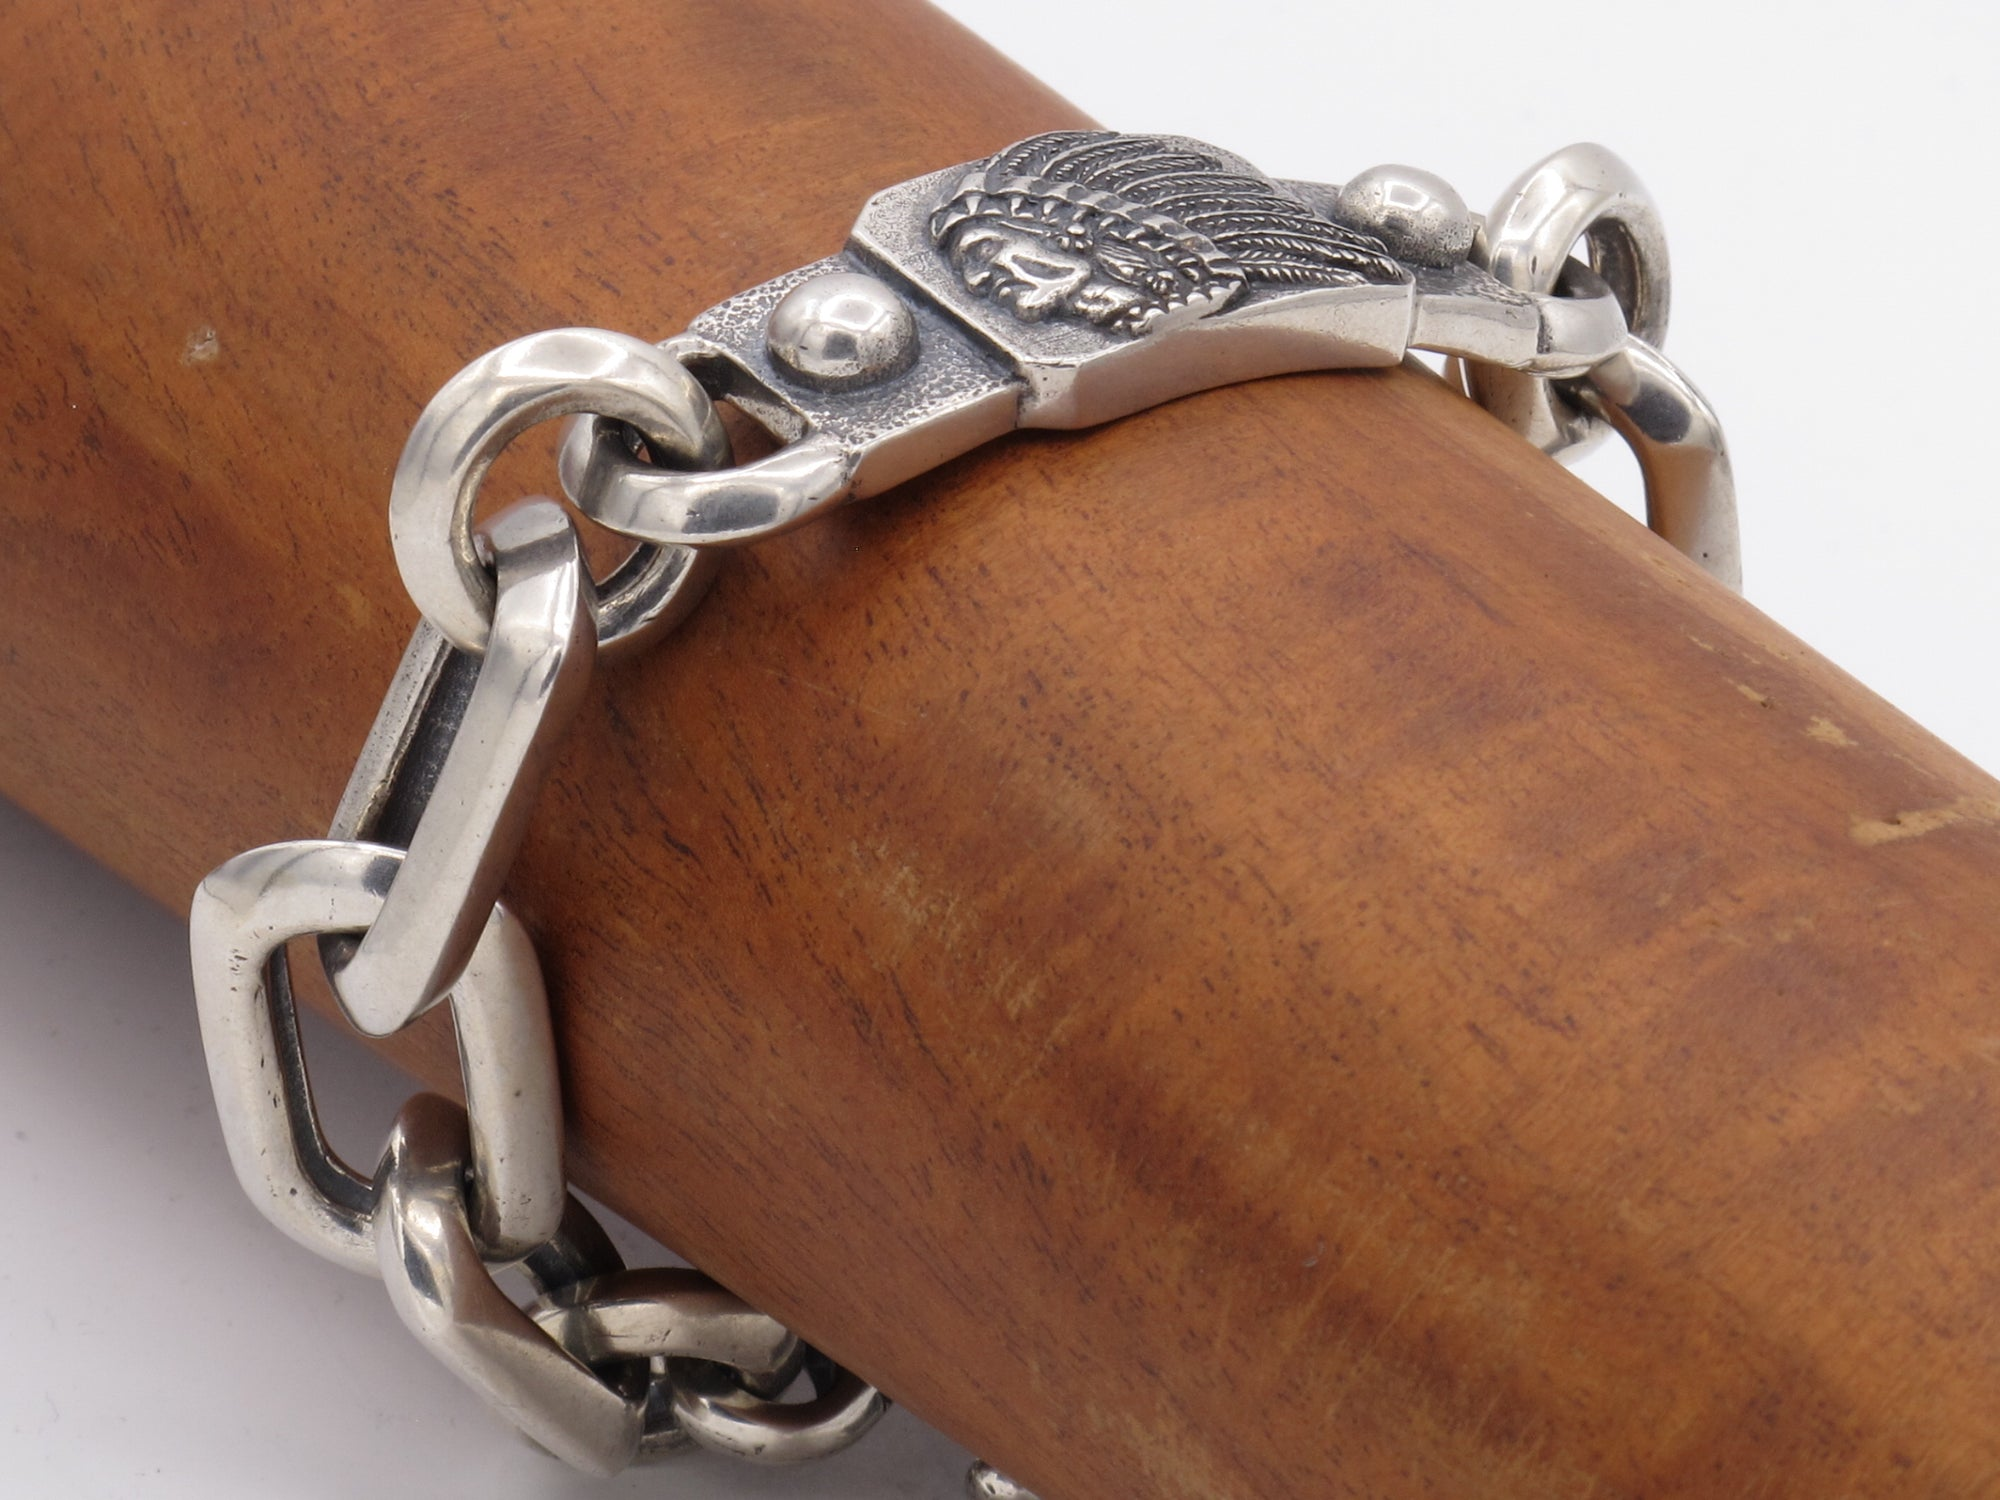 #DB-17 Big Chief ID Link Bracelet